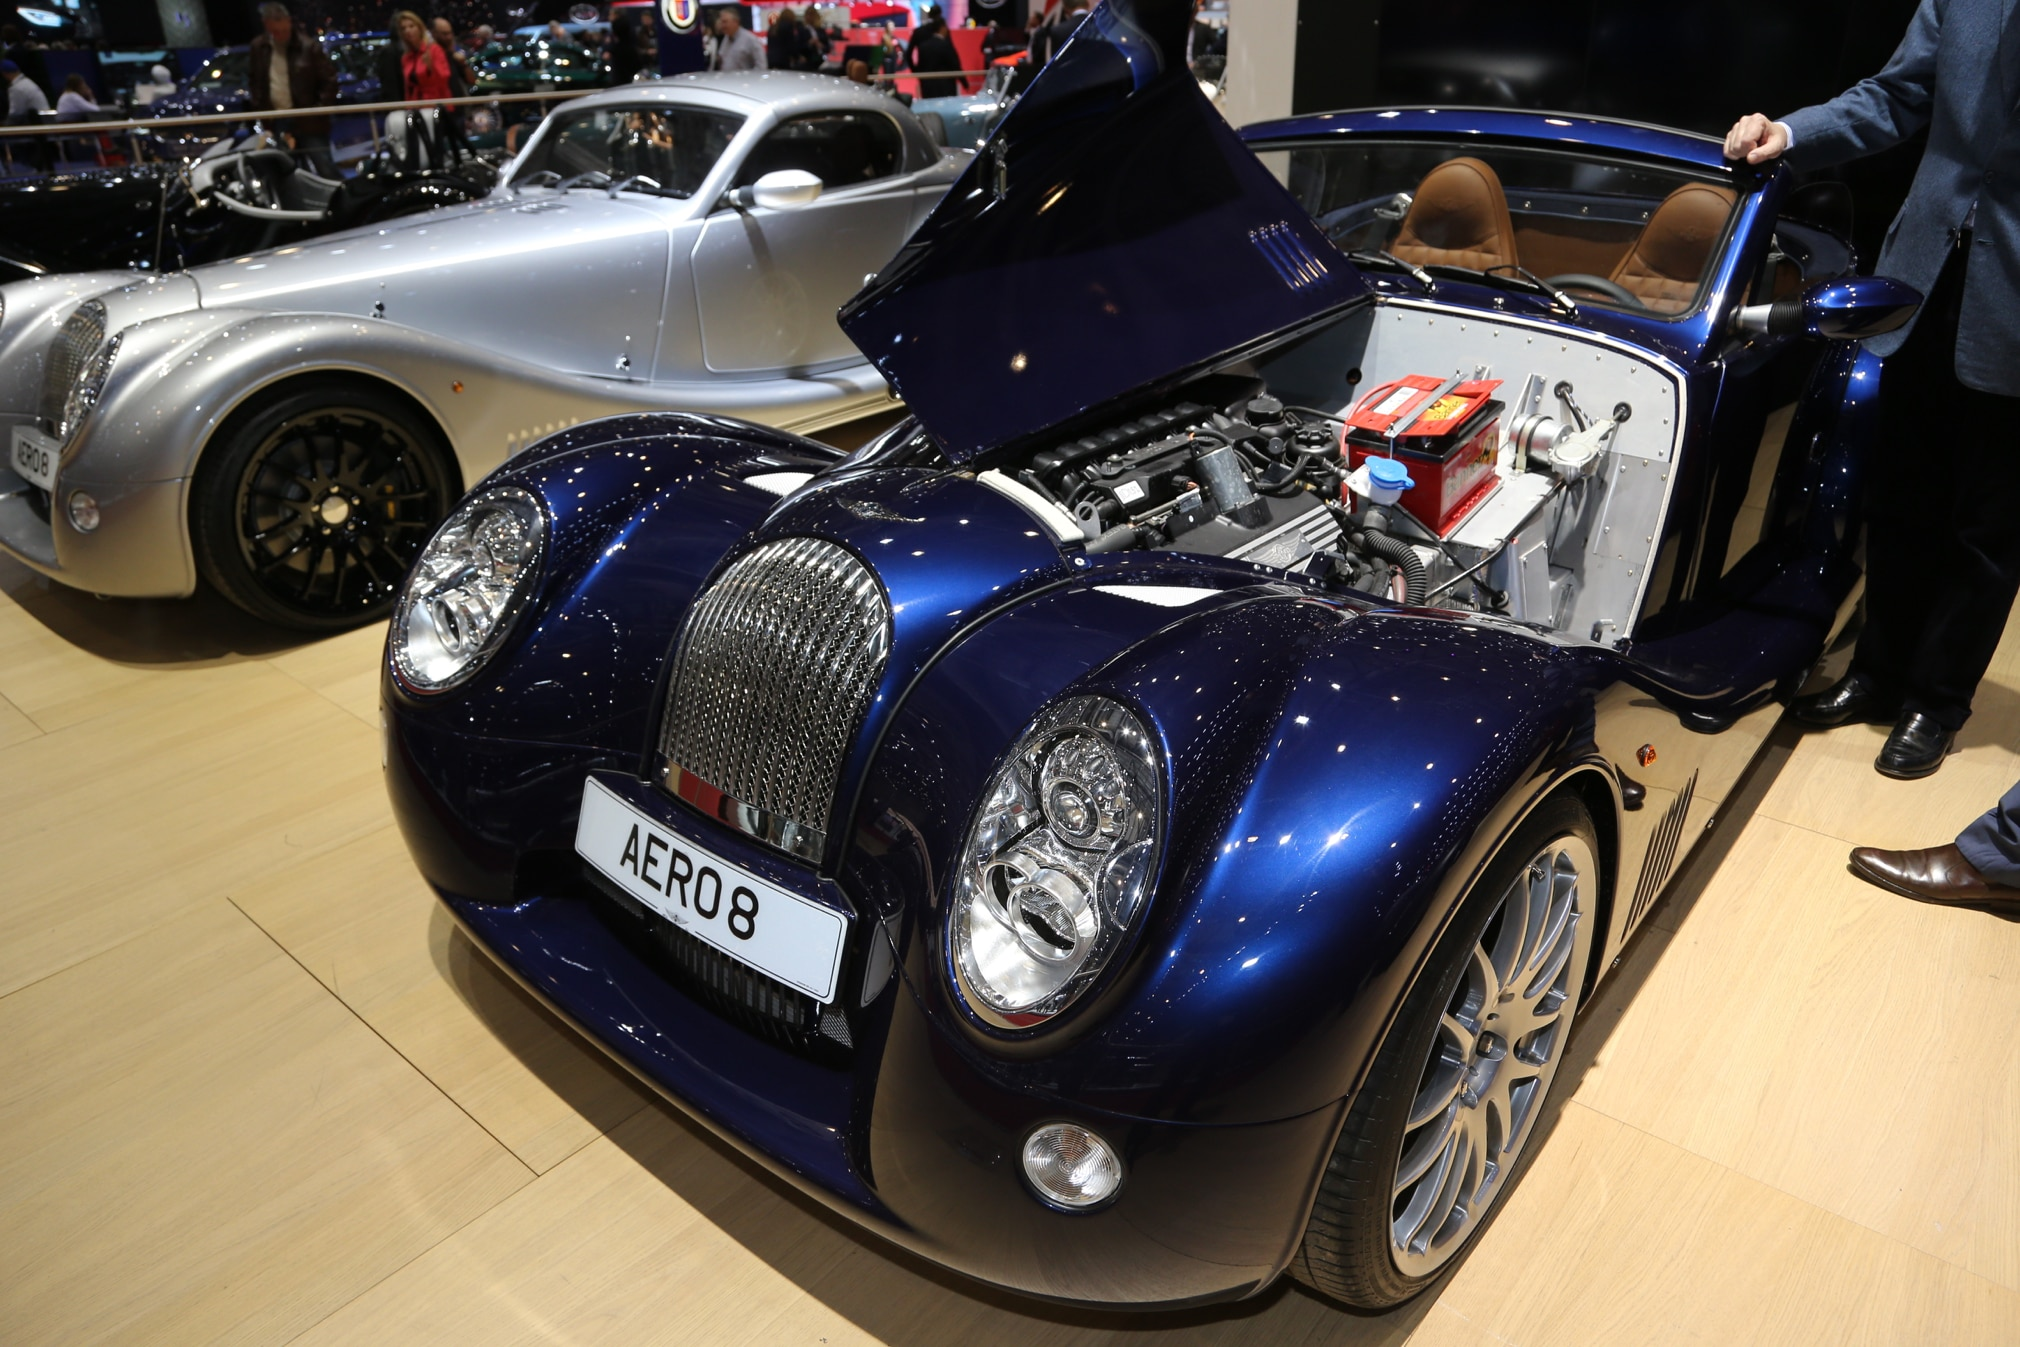 Morgan Aero Supersports 2017 Review, Specification, and Price